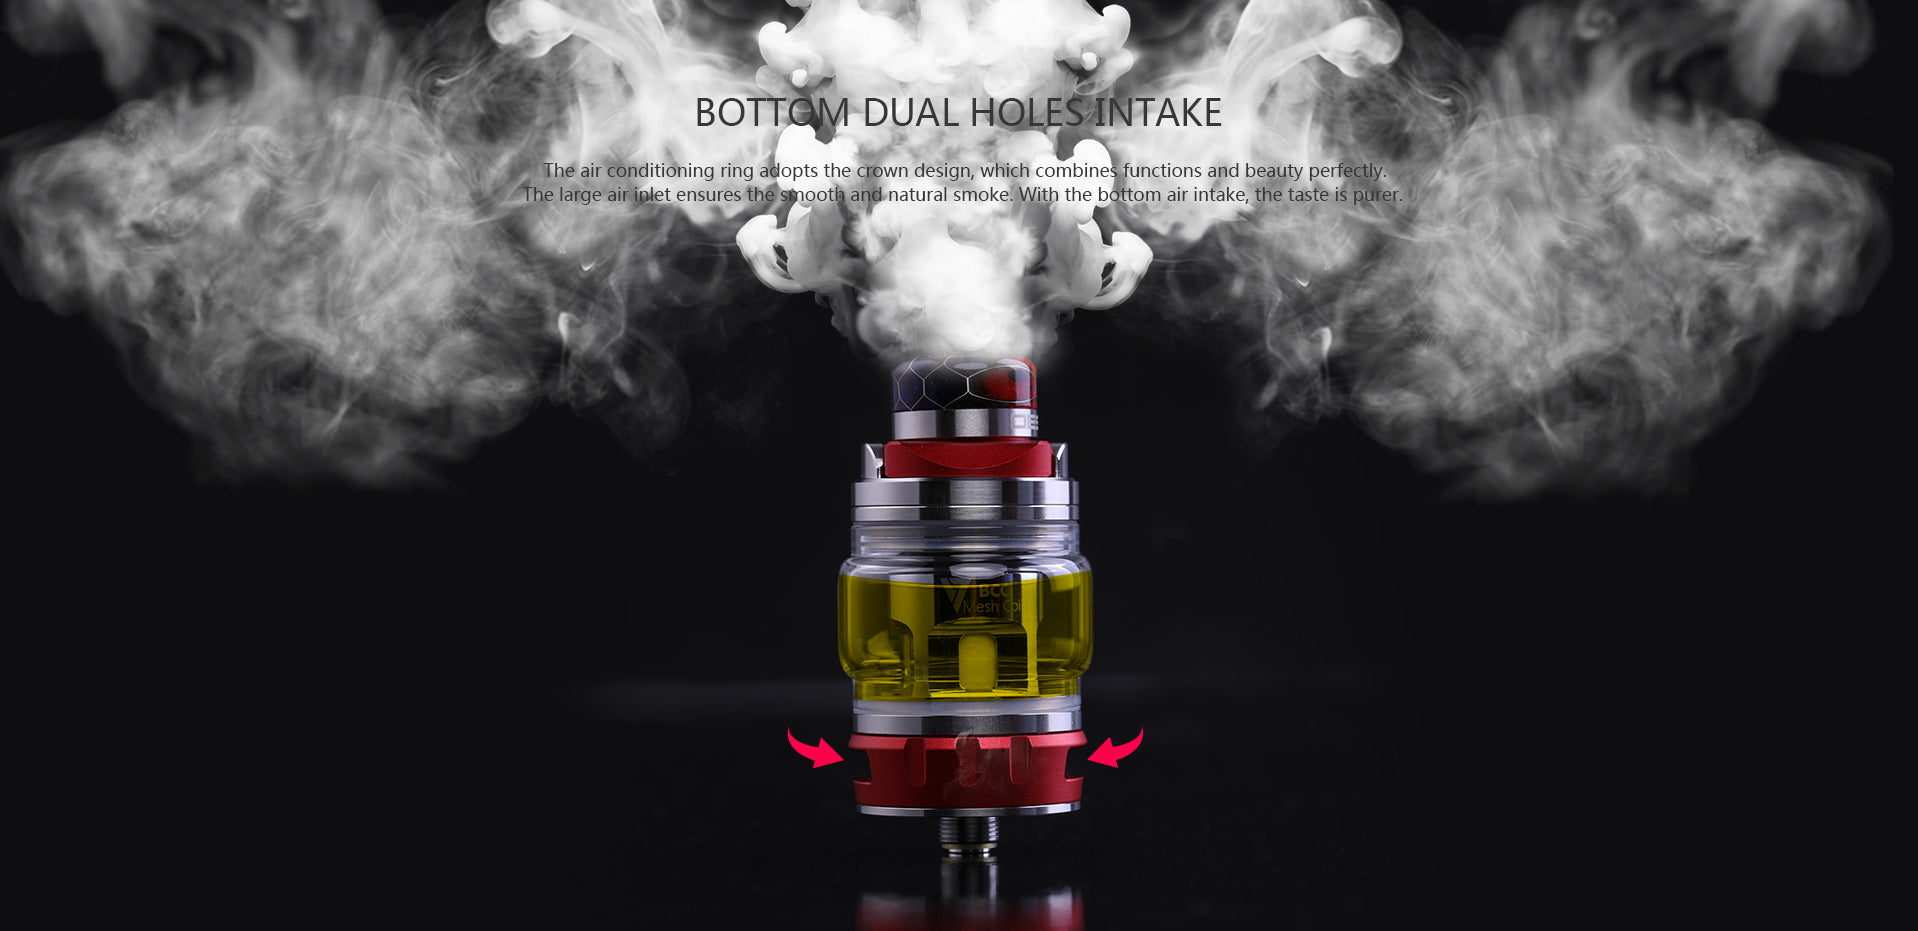 Bottom dual holes intakeThe air conditioning ring adopts the crown design, which combines functions and beauty perfectly. The large air inlet ensures the smooth and natural smoke. With the bottom air intake, the taste is purer.